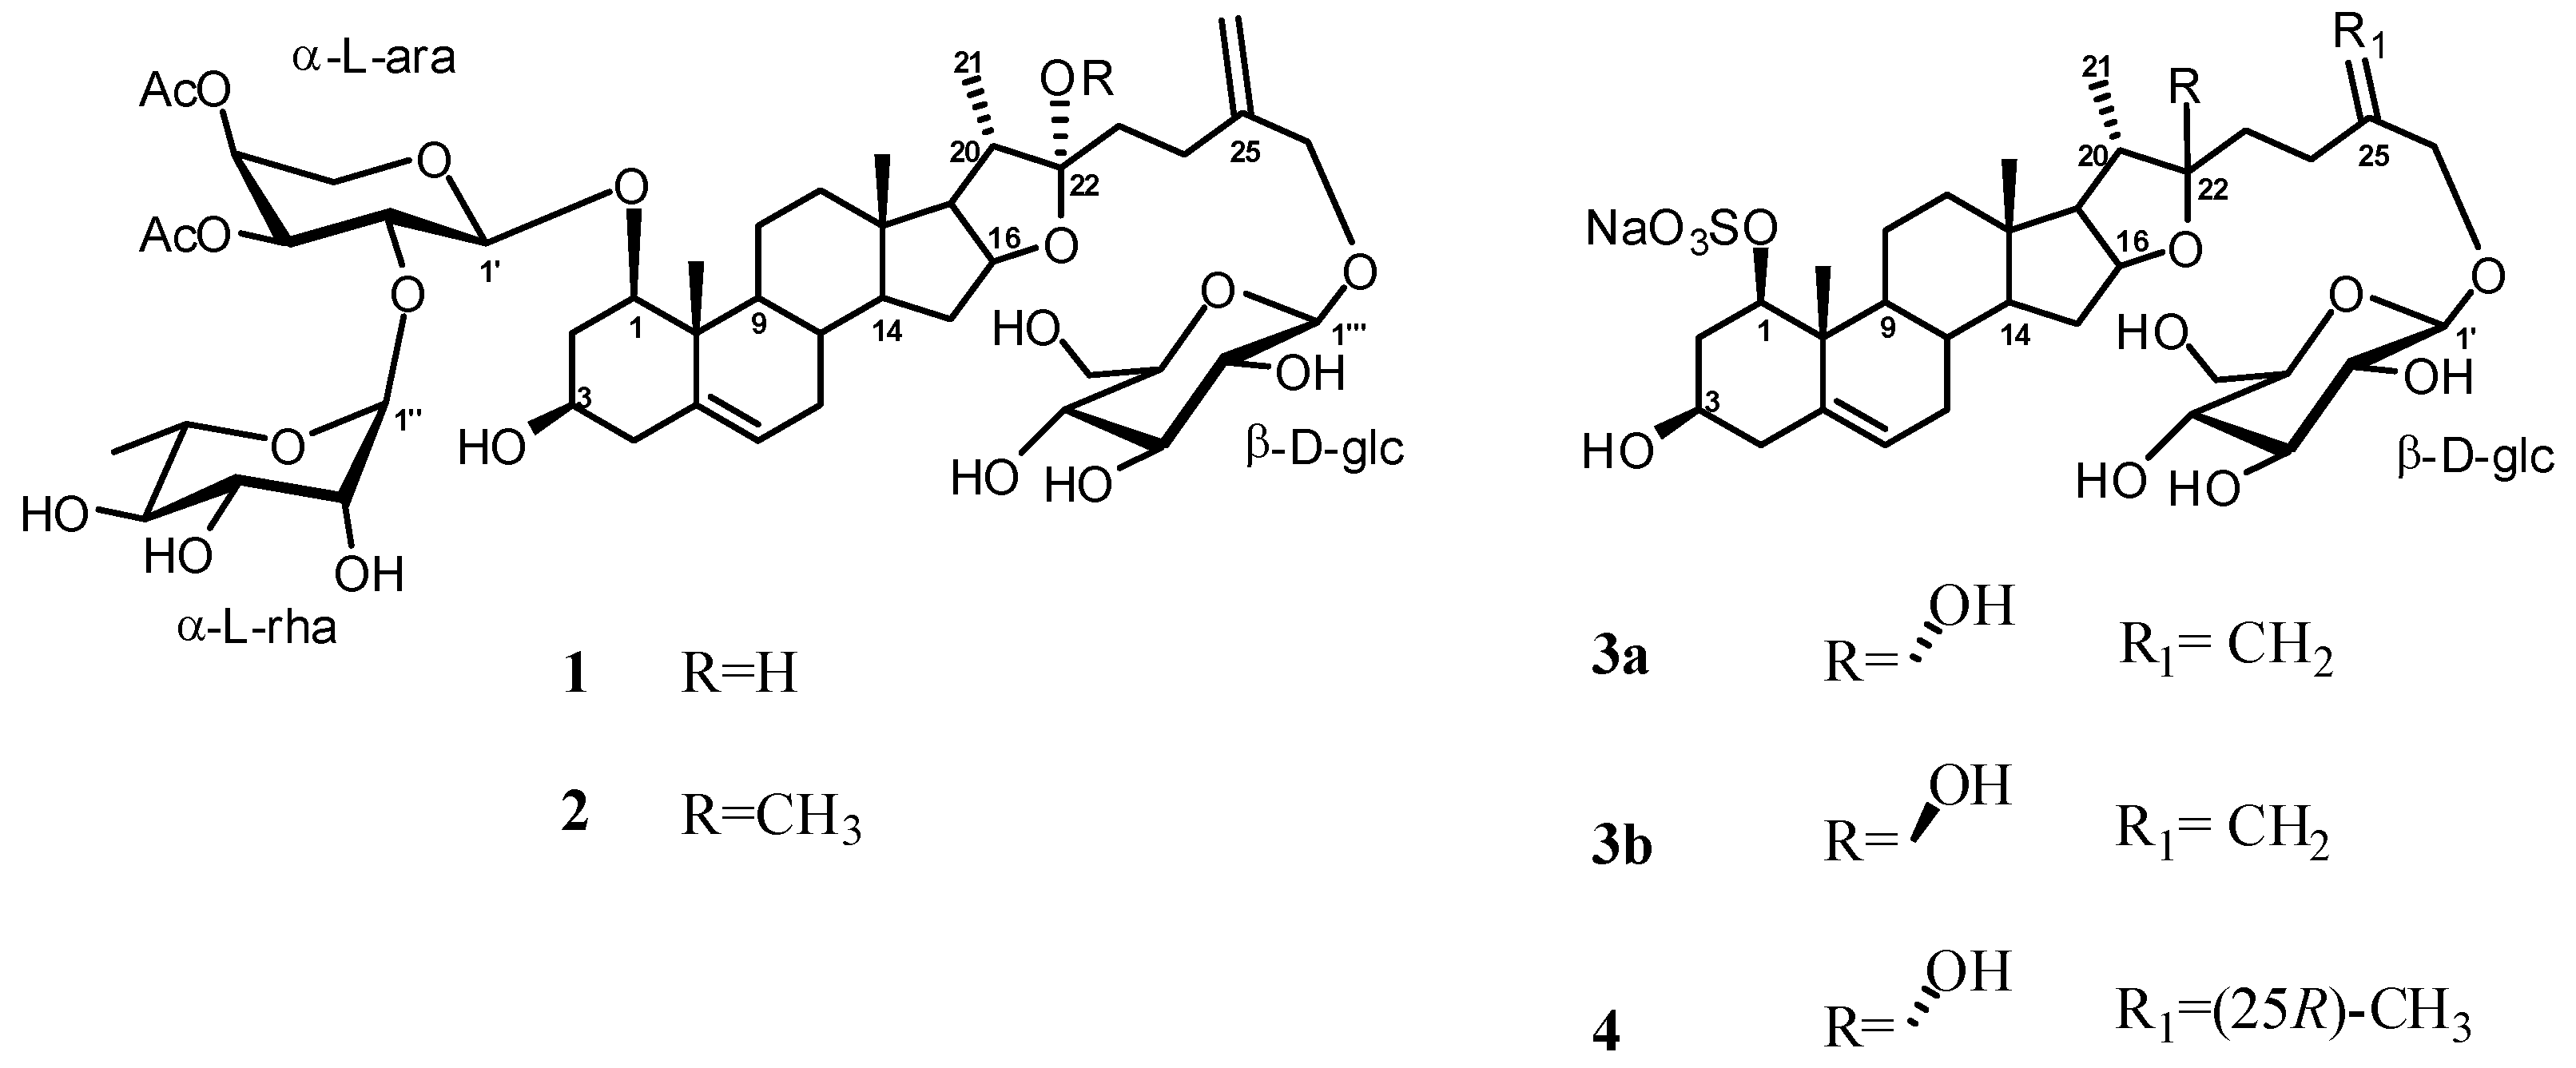 steroidal glycosides extraction